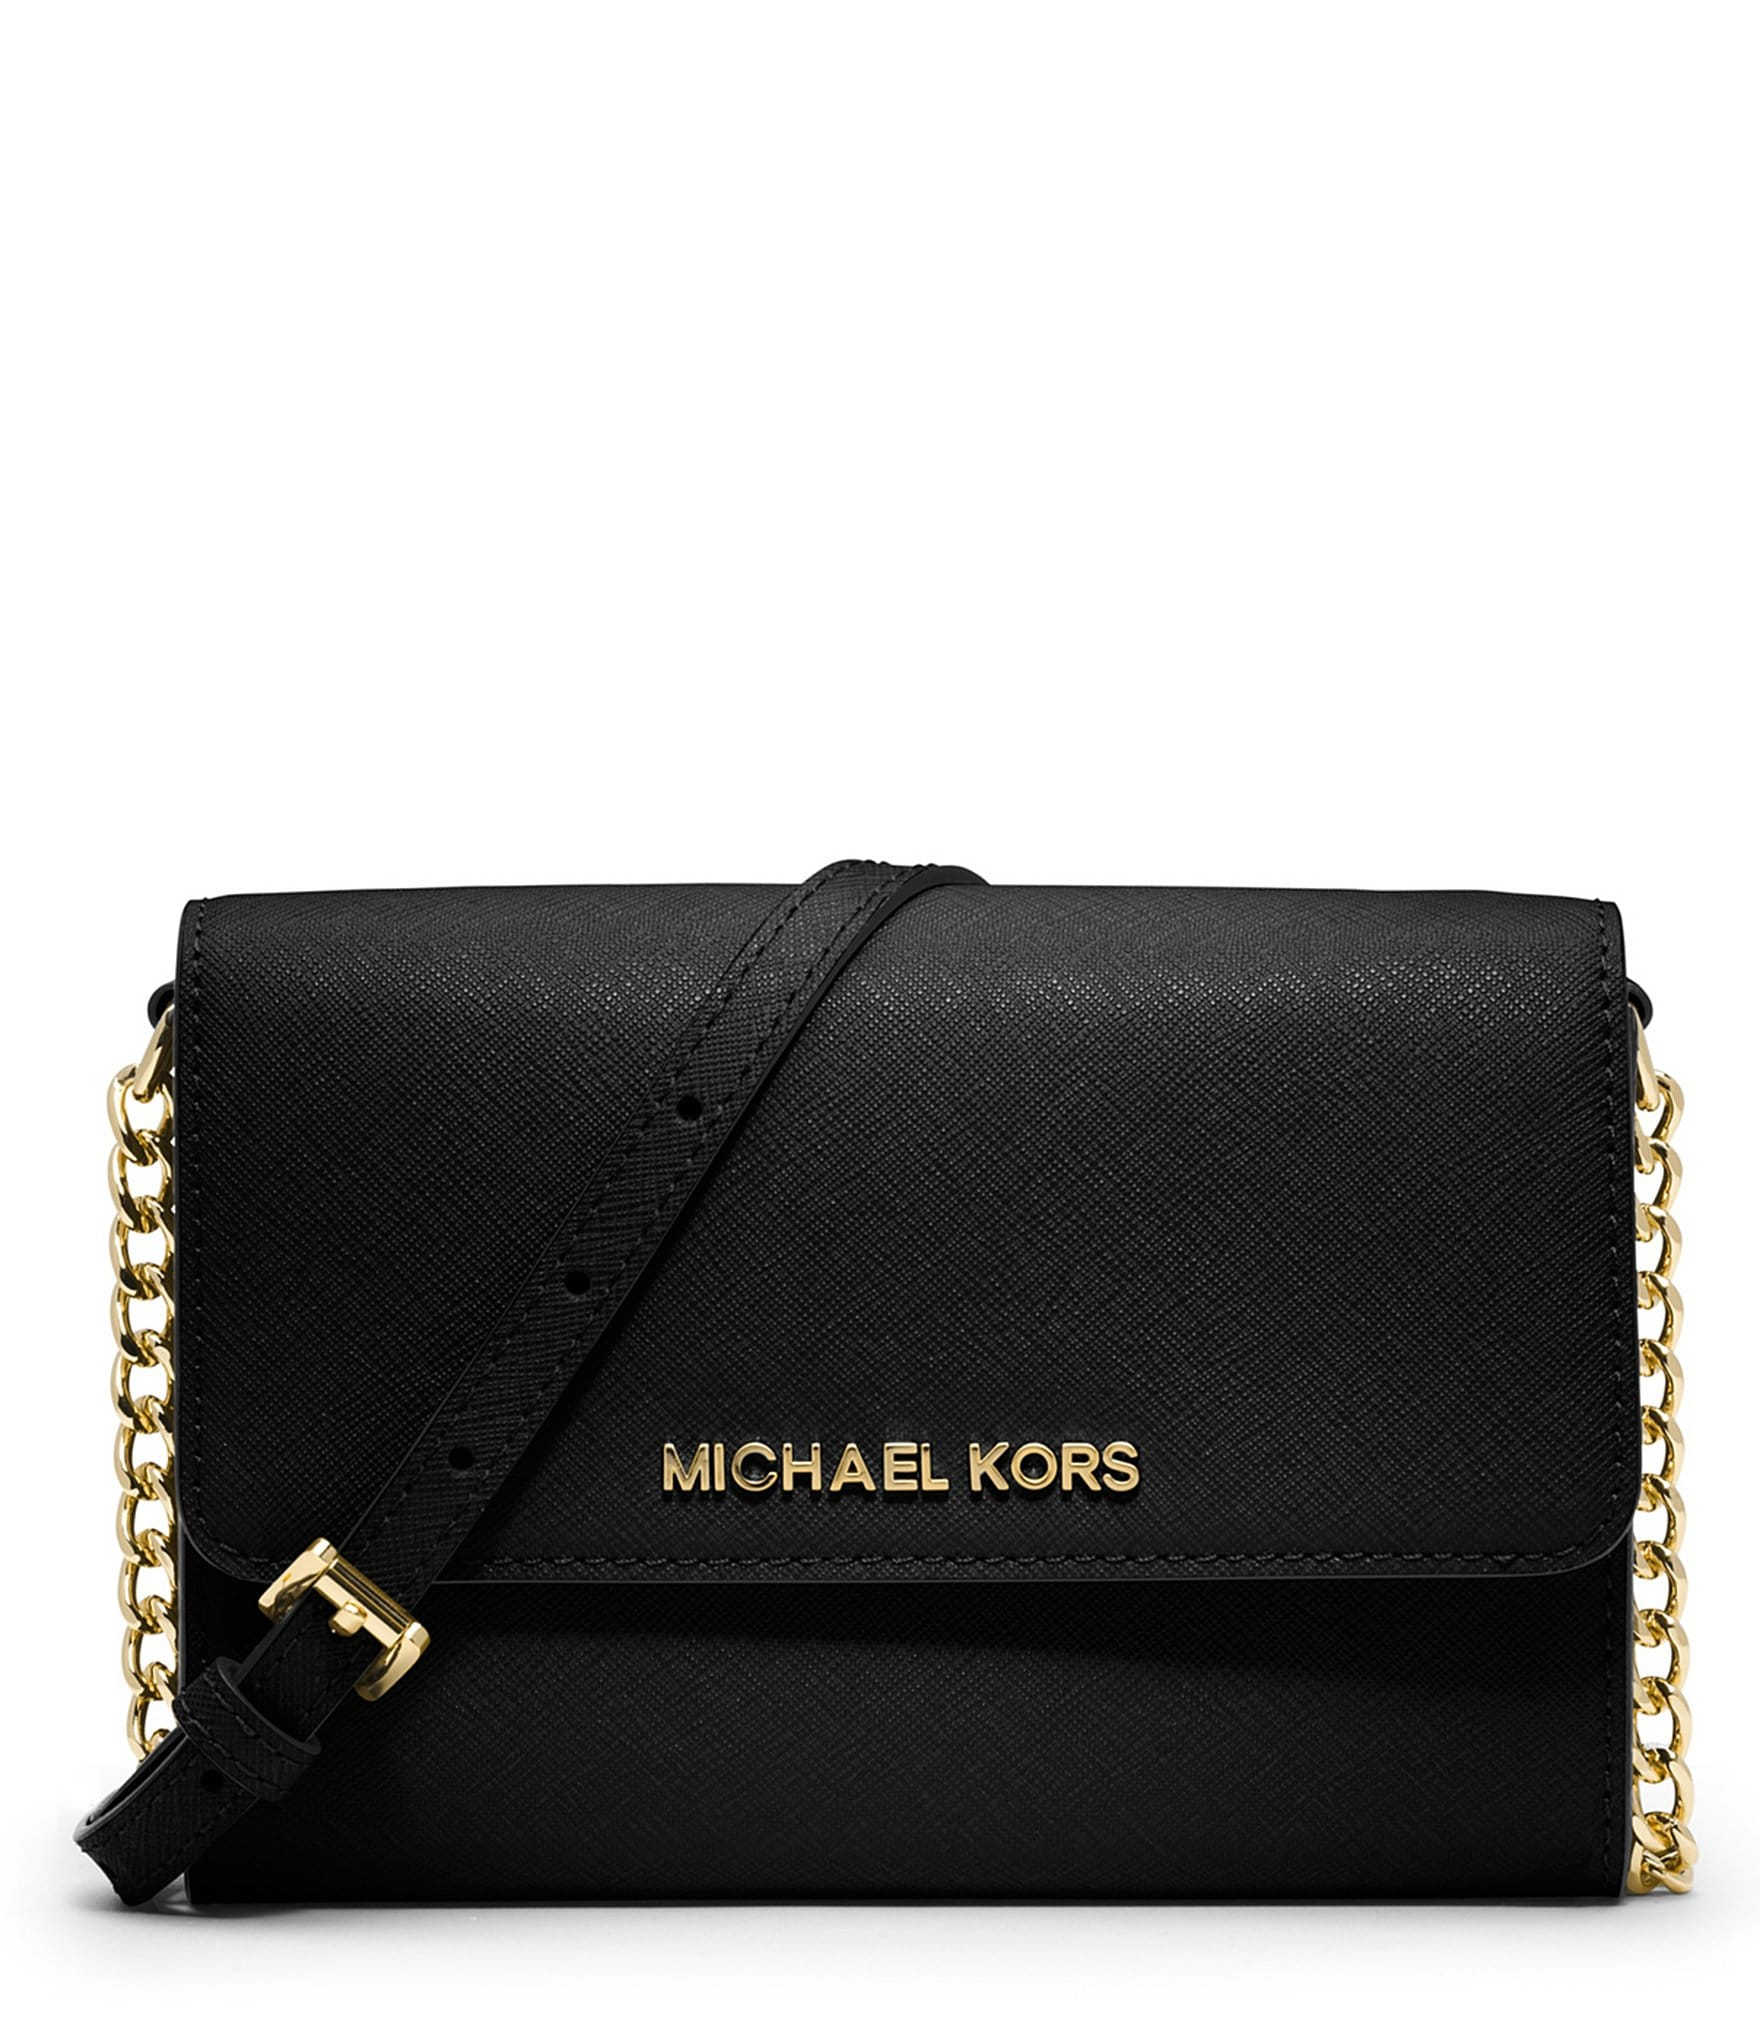 7d10dccbda22 Buy michael kors coin purse wallet > OFF64% Discounted